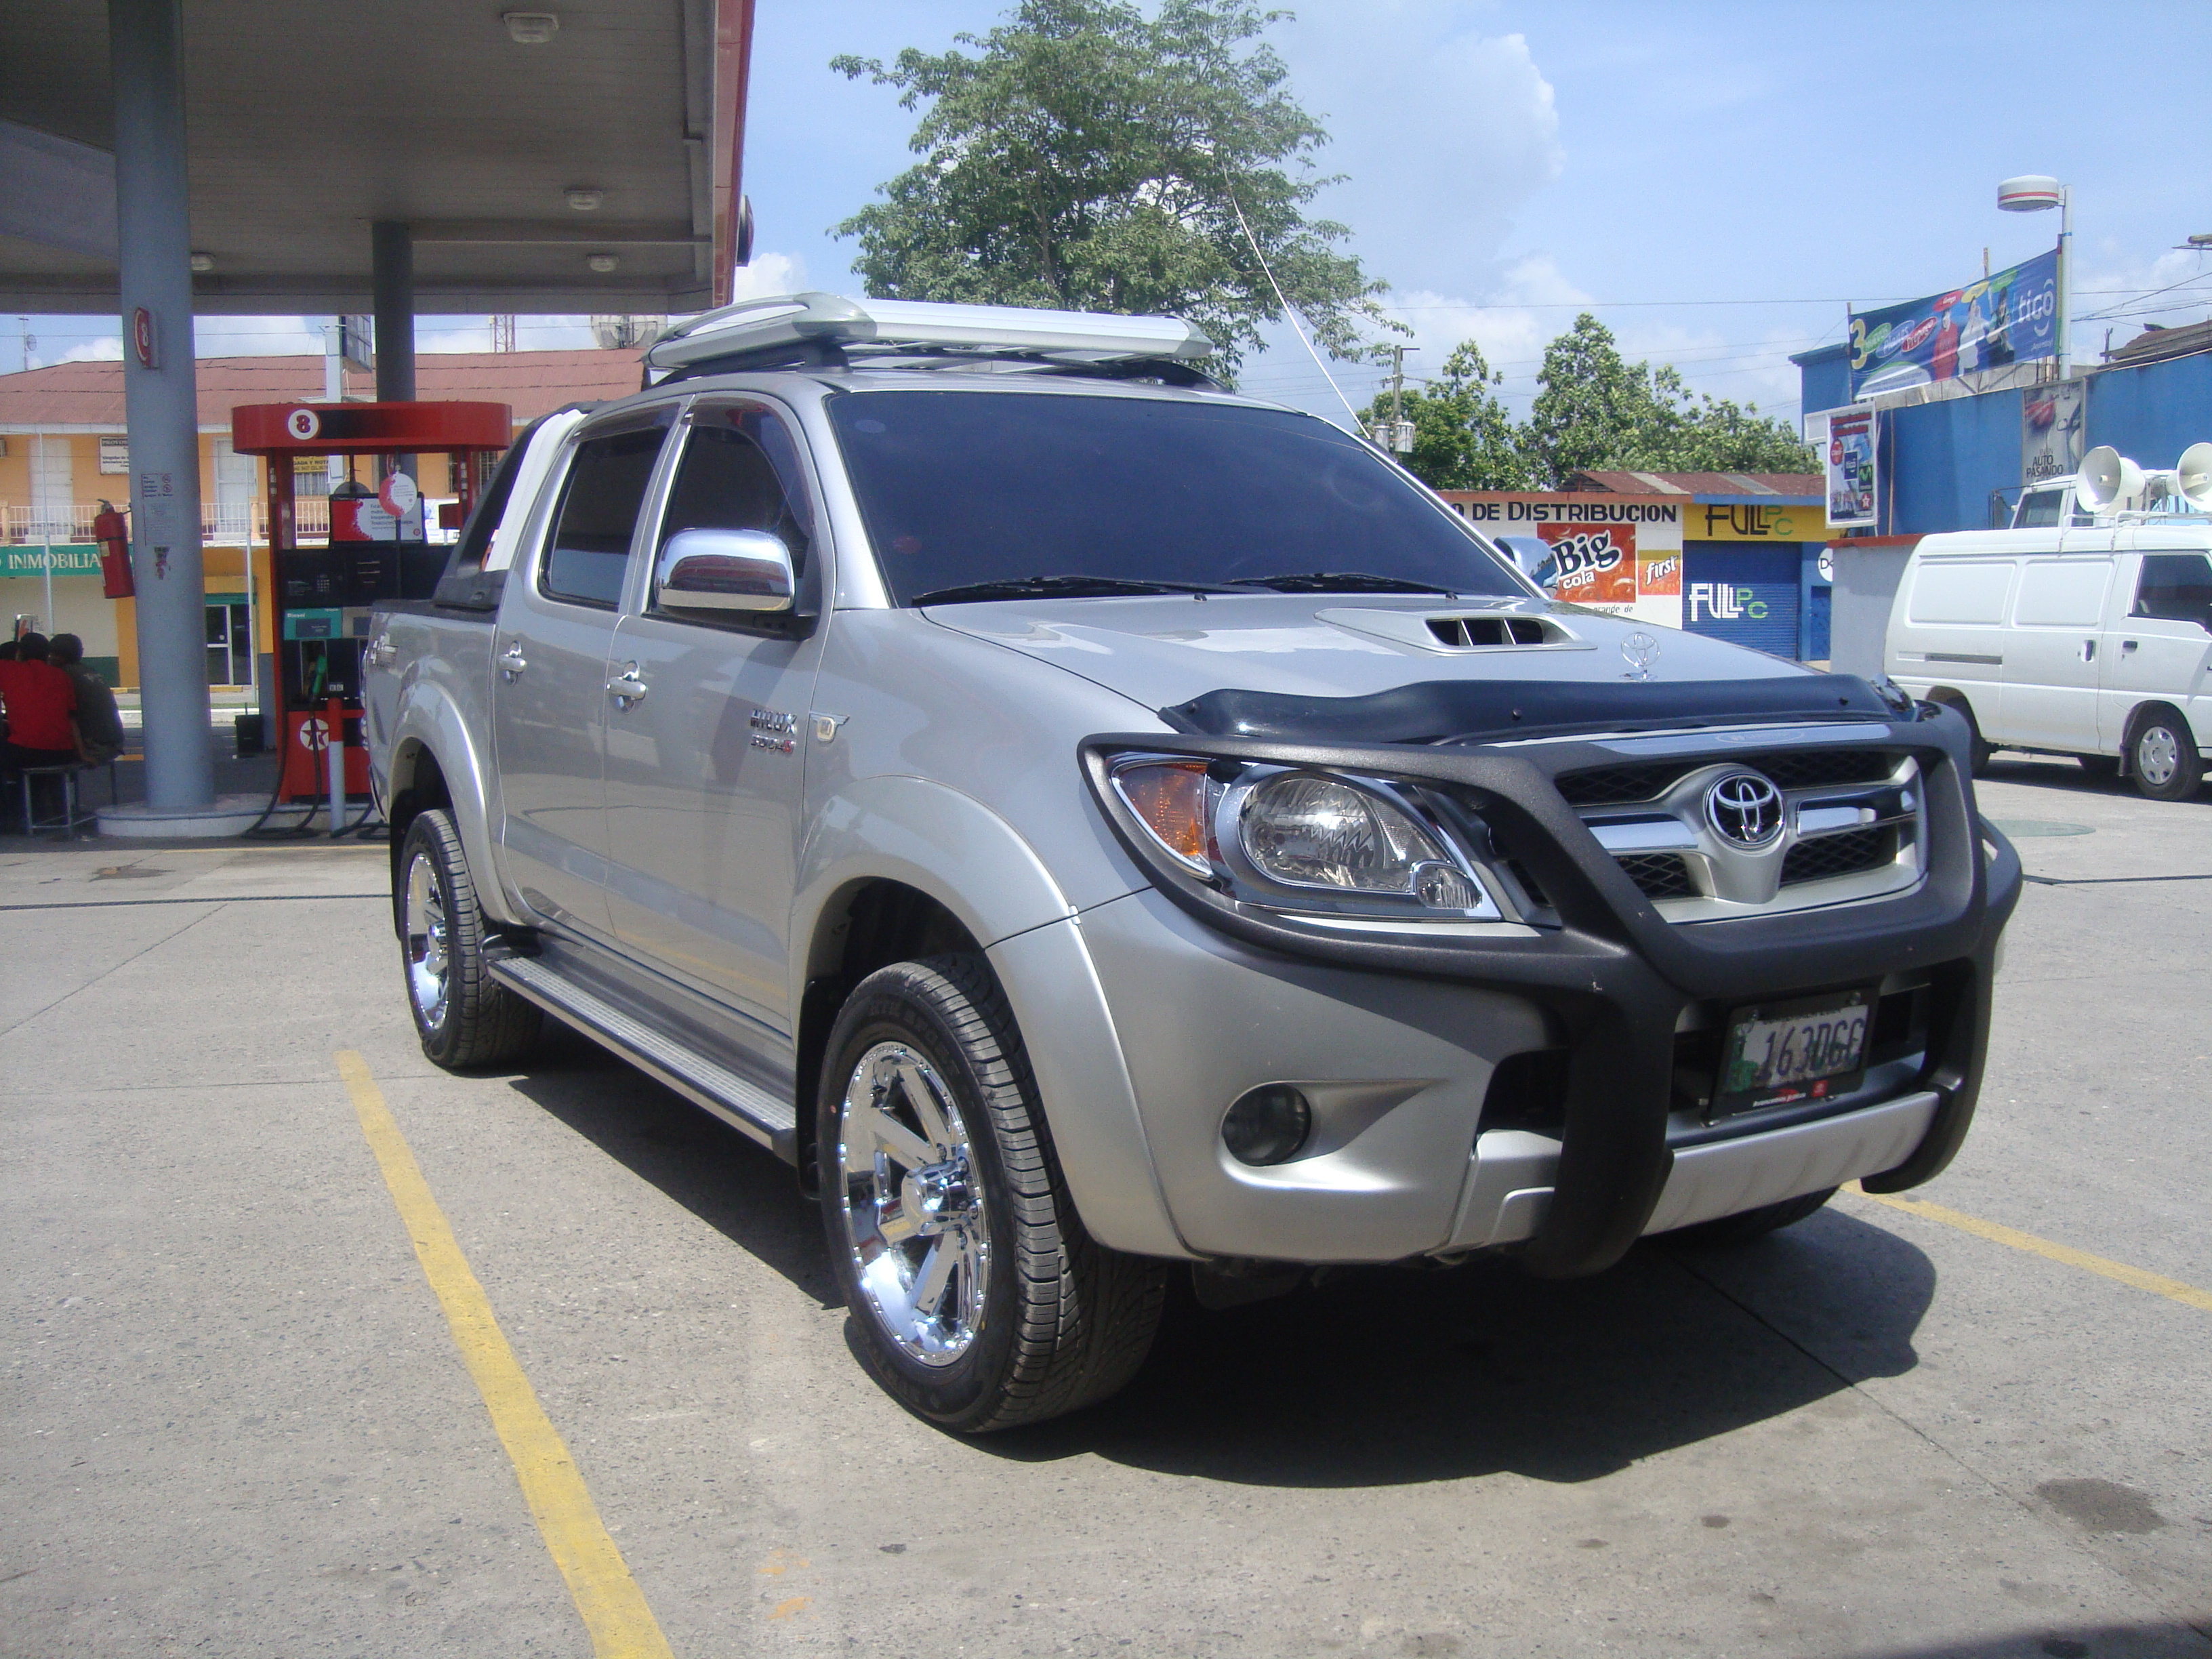 hilux182 39 s 2007 toyota hilux in puerto barrios. Black Bedroom Furniture Sets. Home Design Ideas